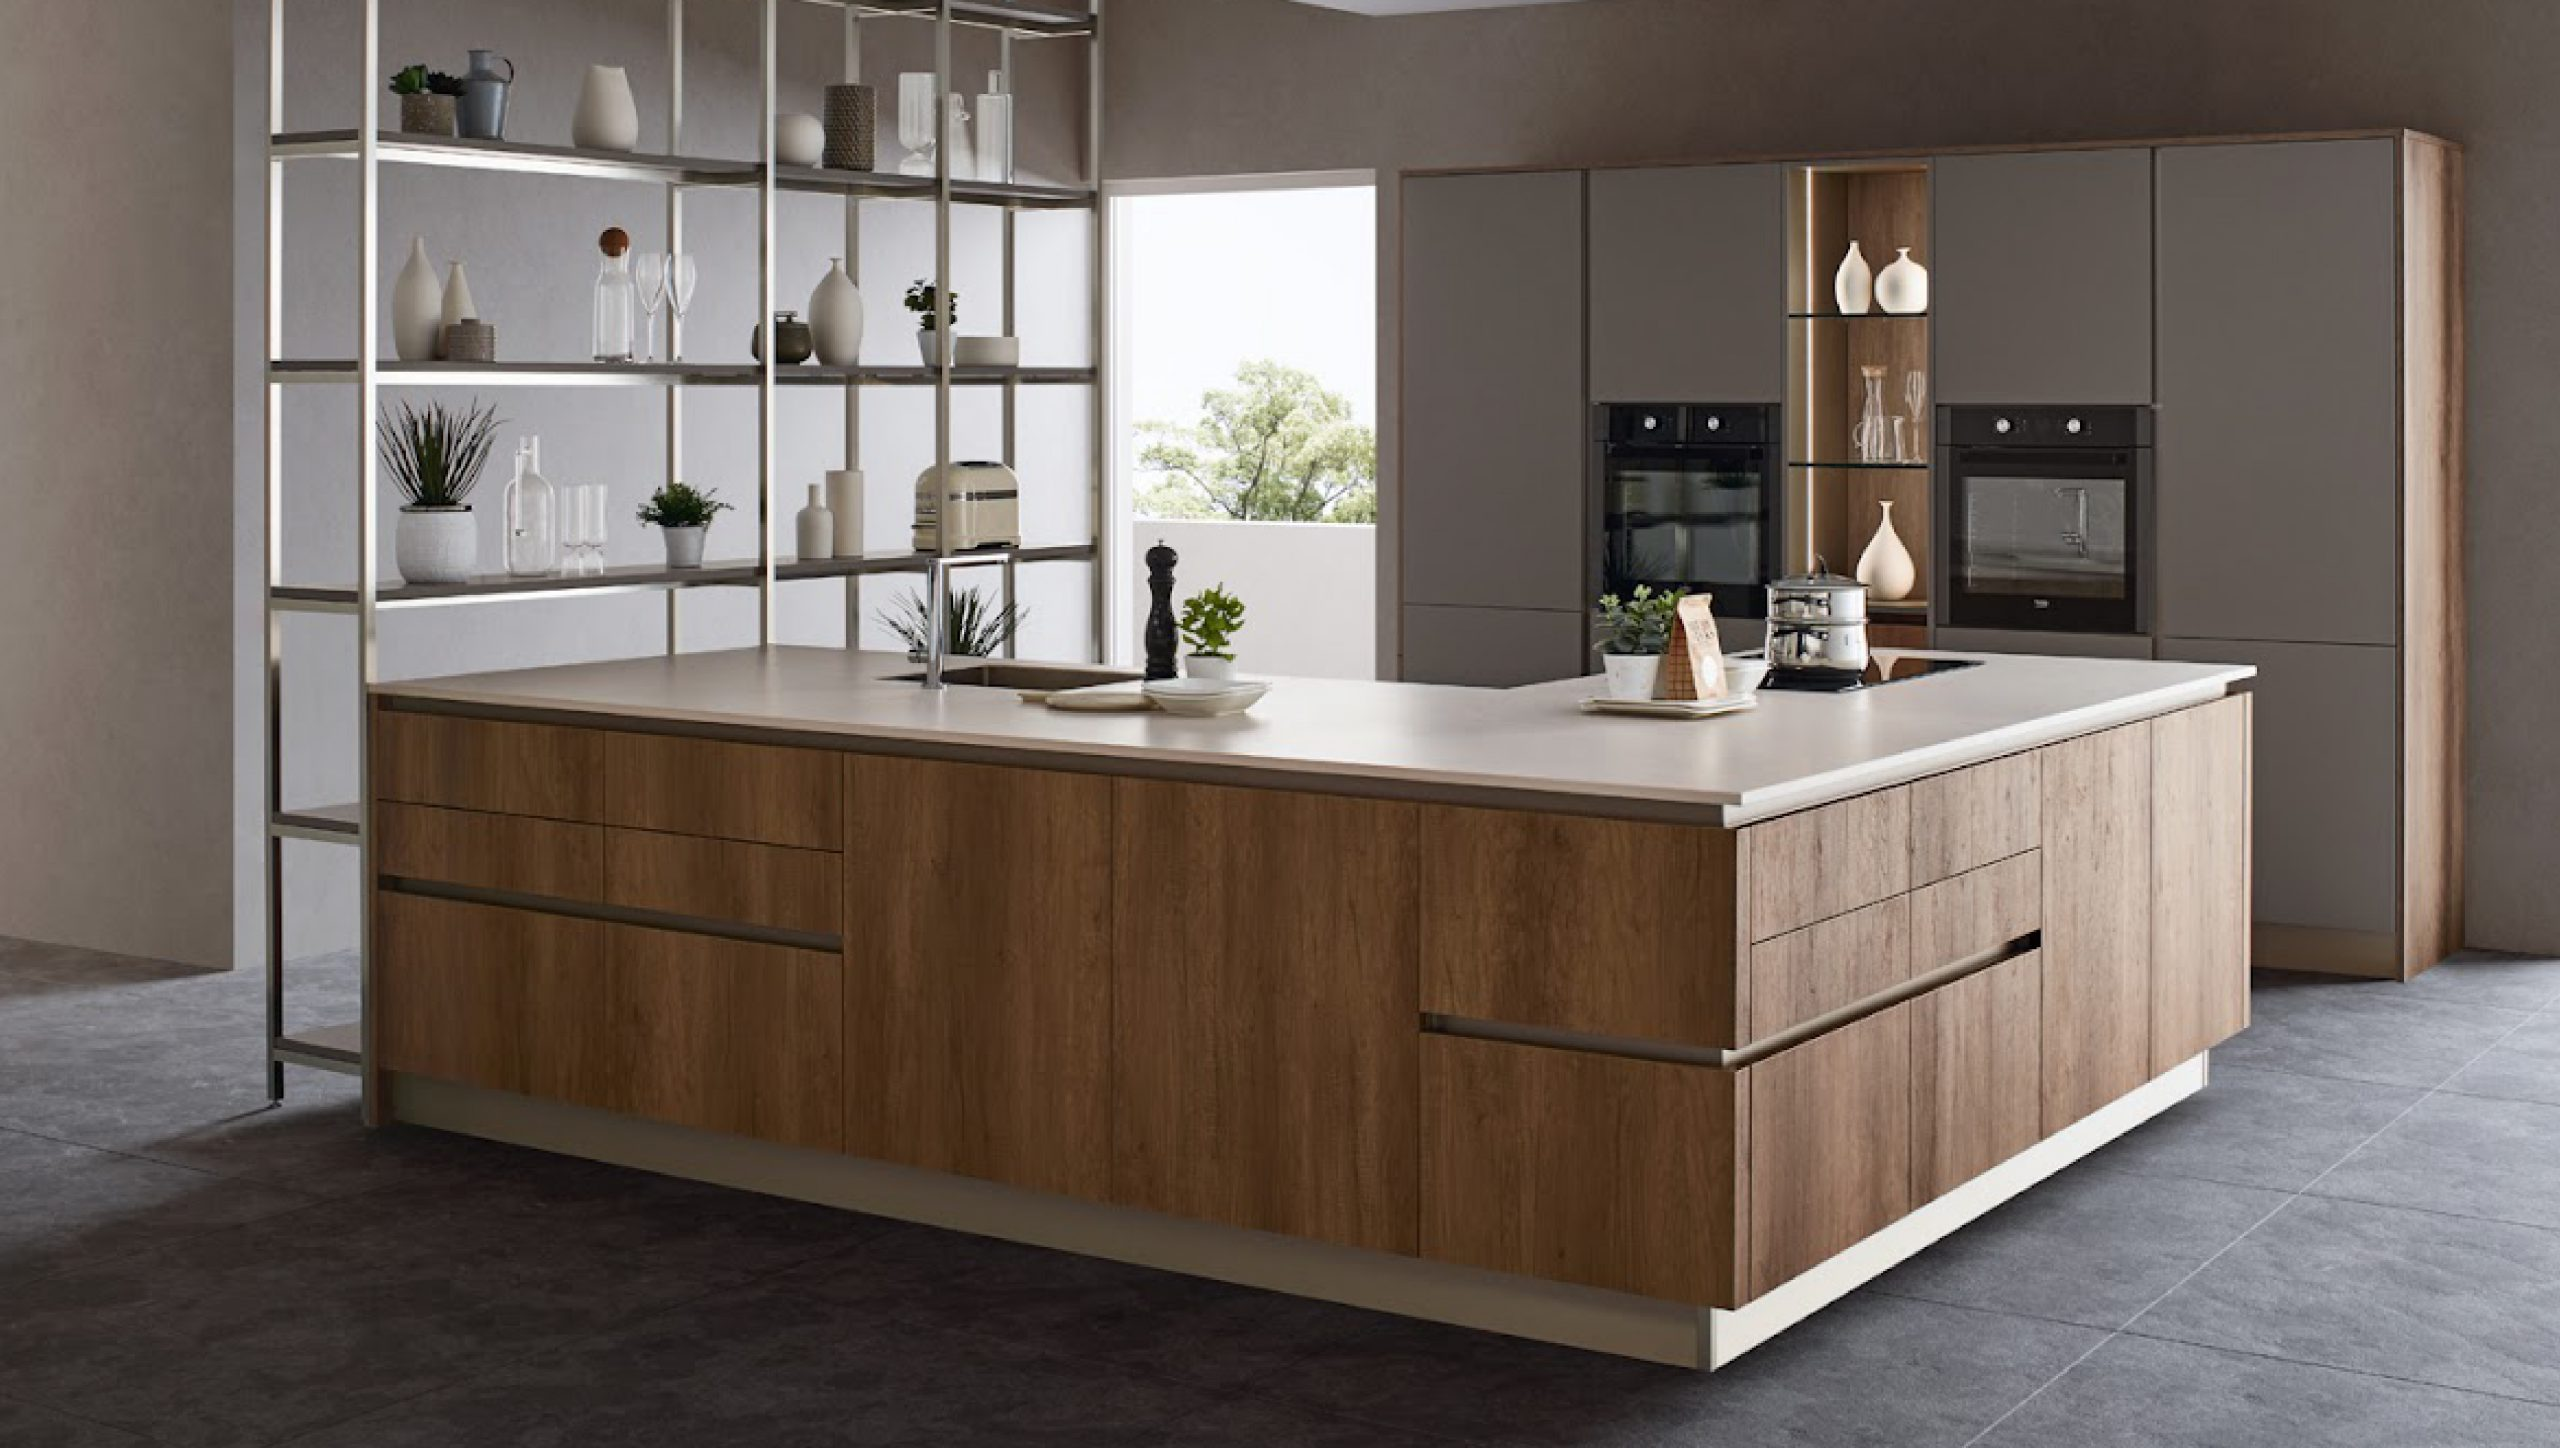 How To Choose The Best Modular Kitchen Designs In 2021